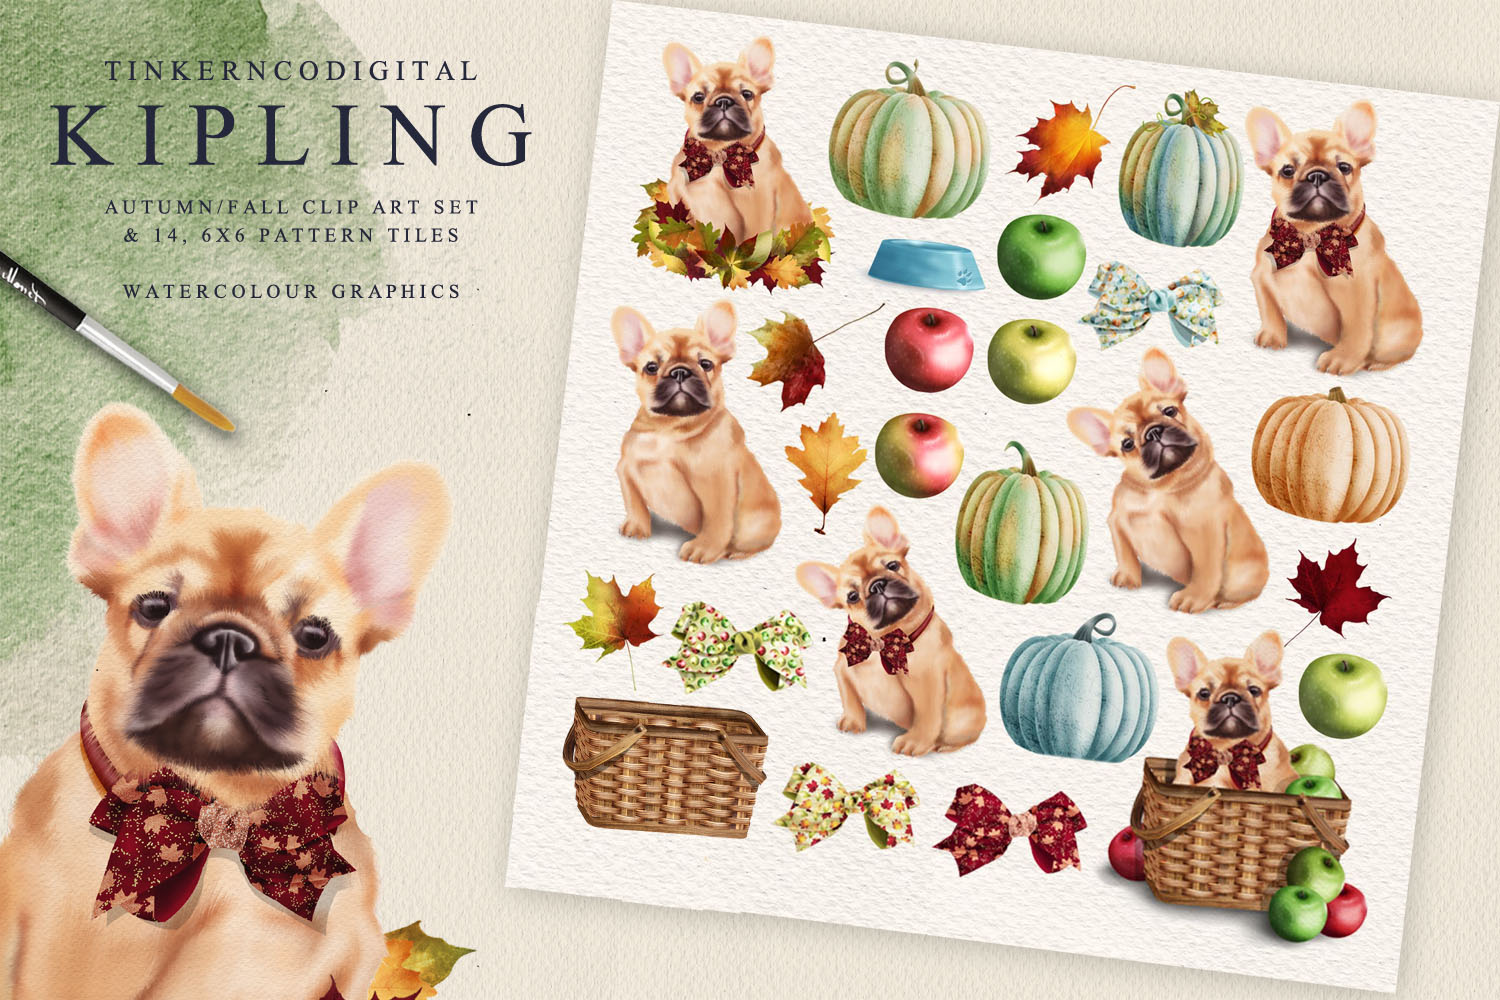 French Bulldog Clipart Pattern tiles example image 3